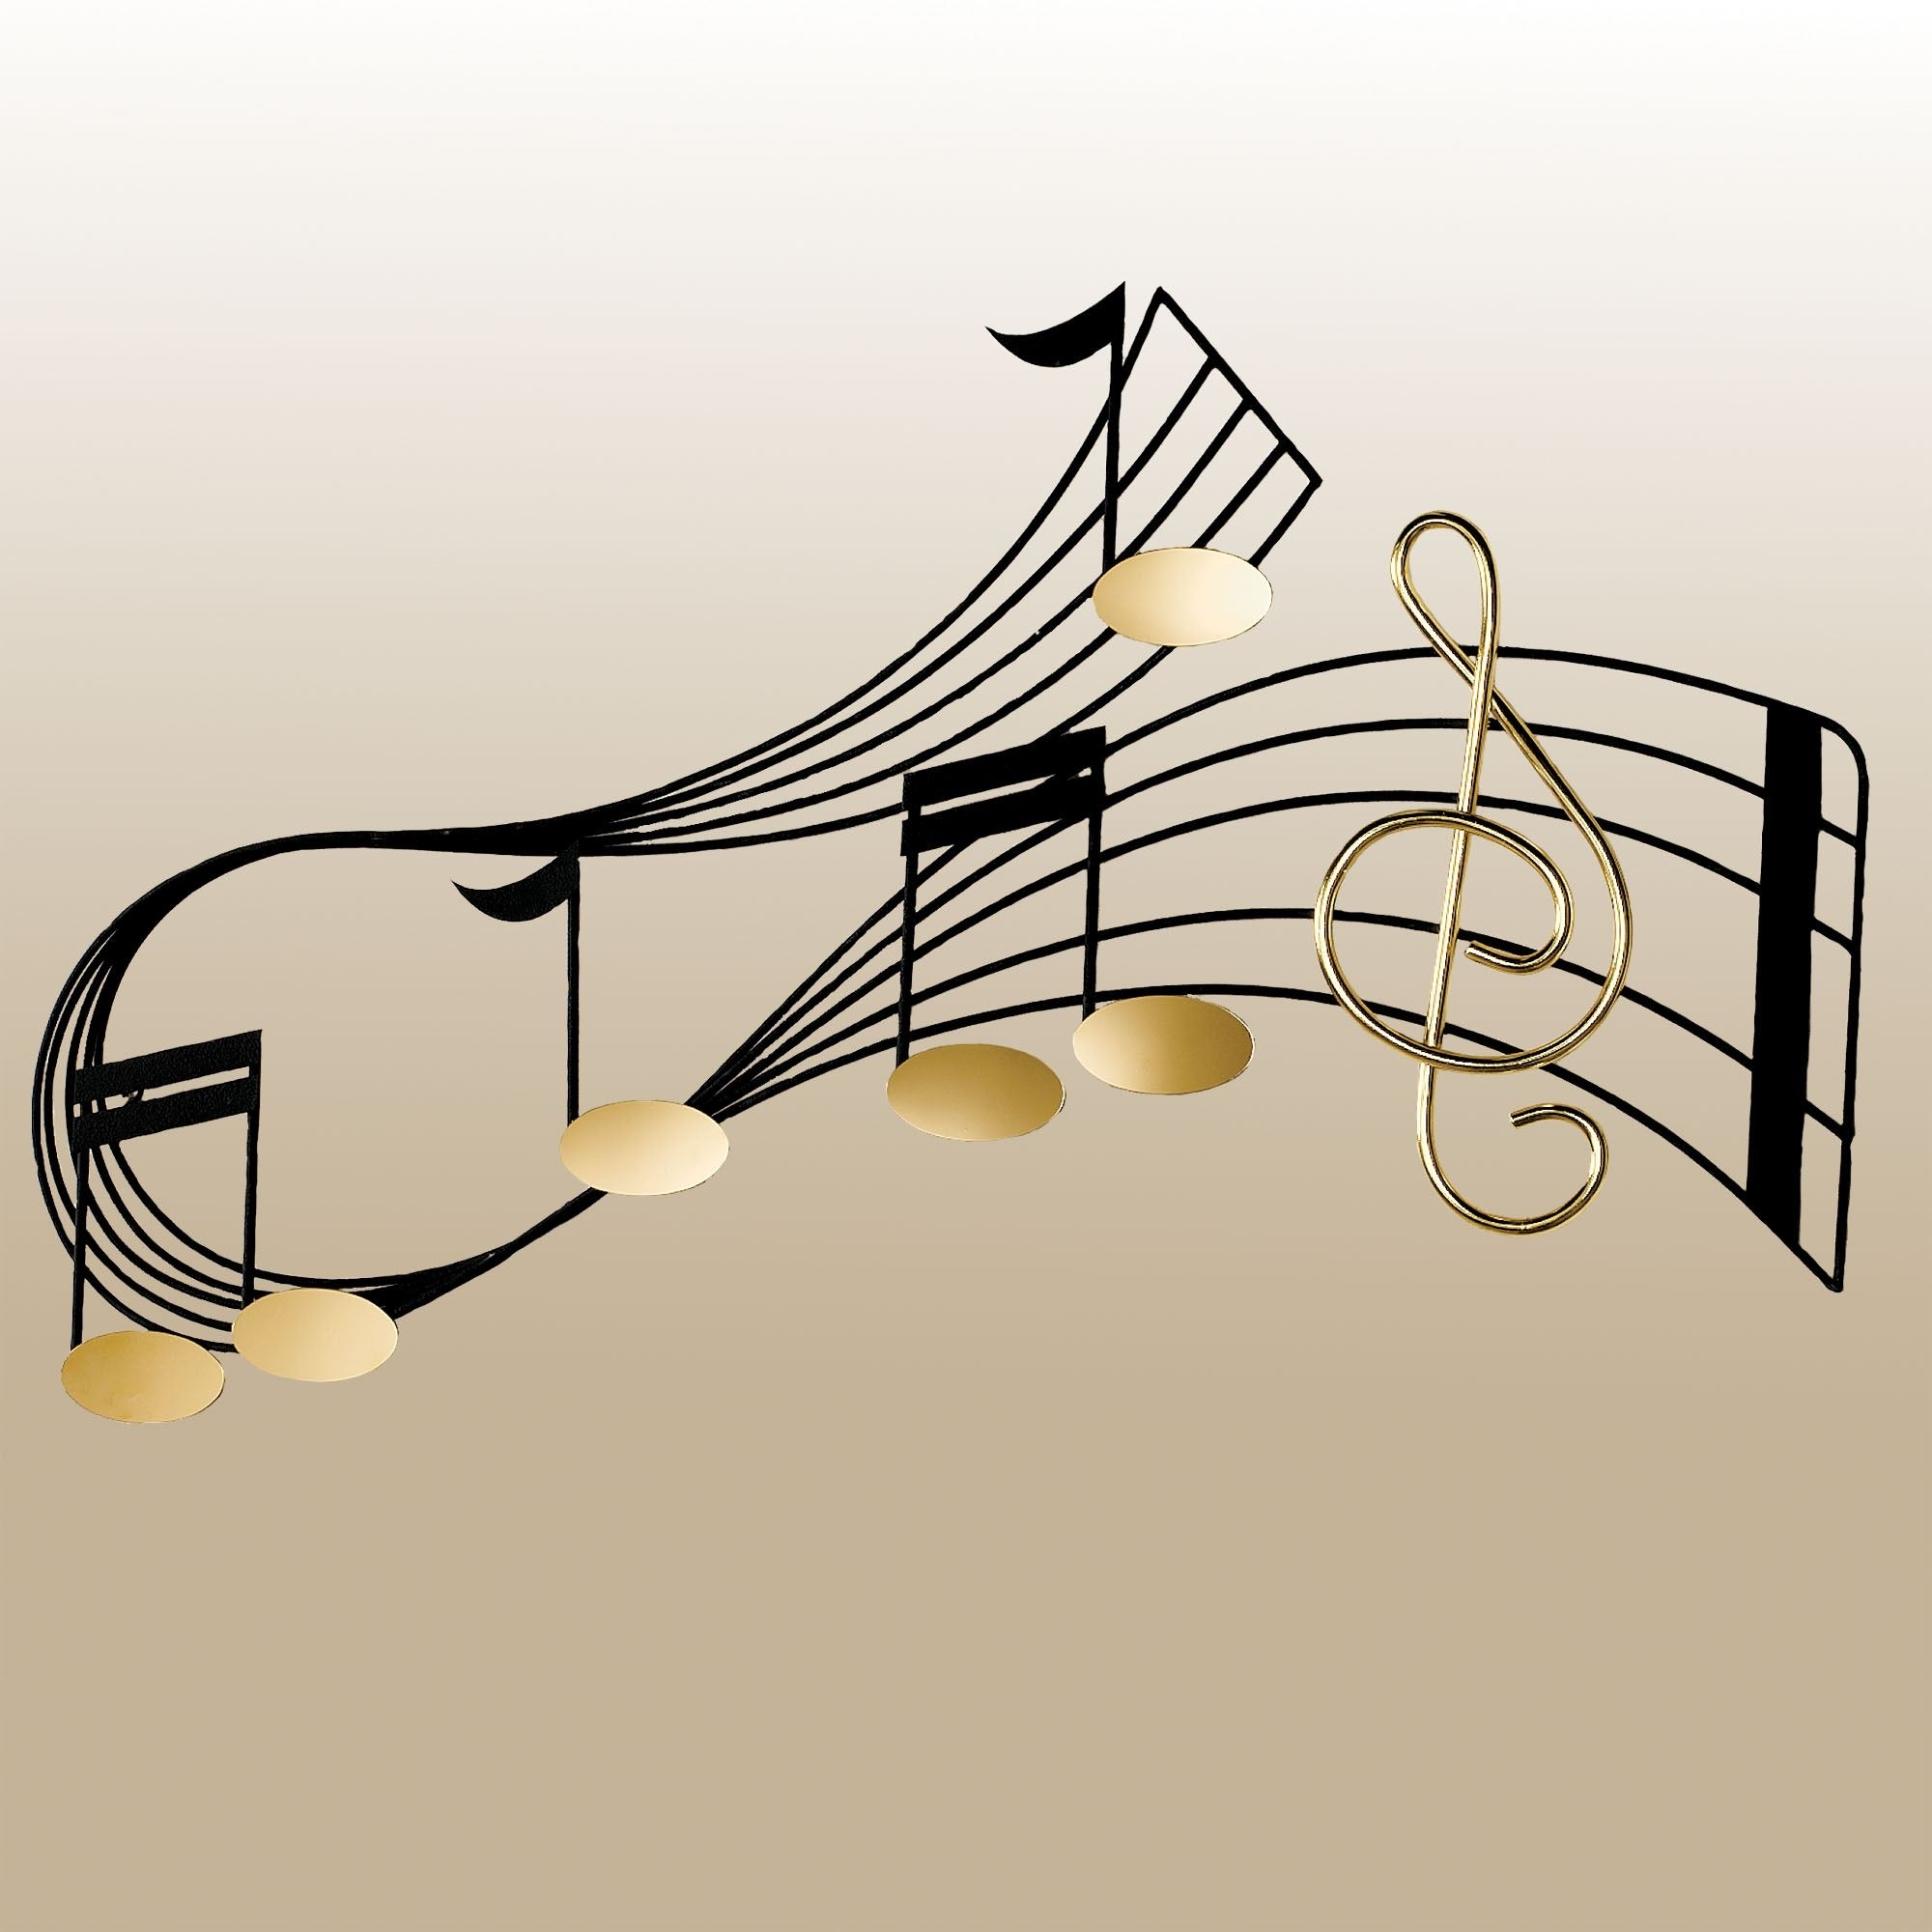 Well Known Rhythm Music Staff Metal Wall Sculpture Pertaining To Music Metal Wall Art (View 14 of 15)